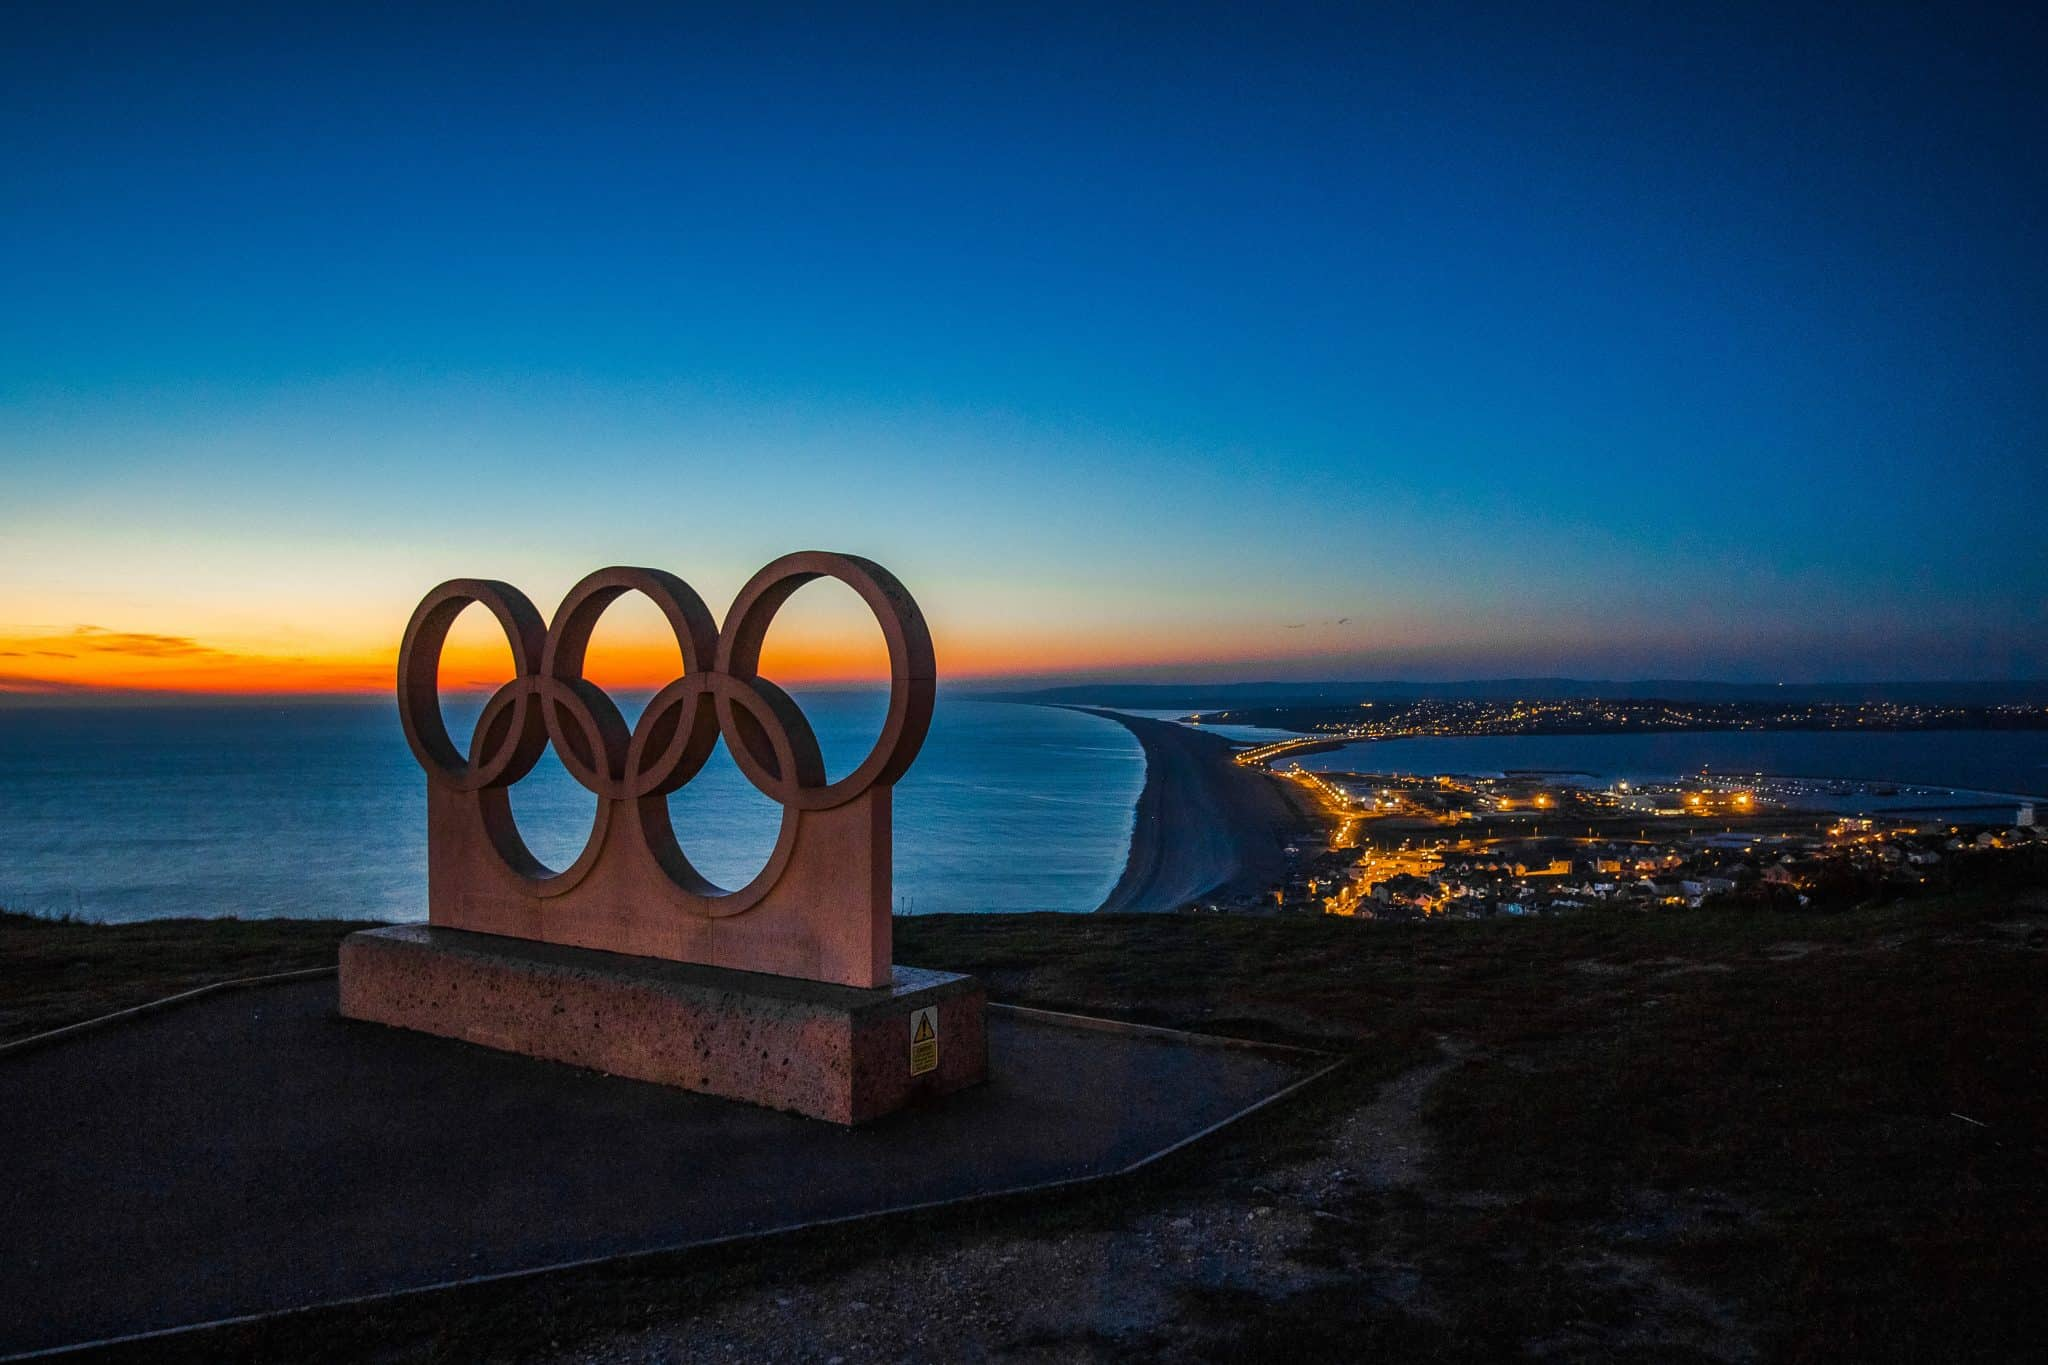 Olympic games crypto